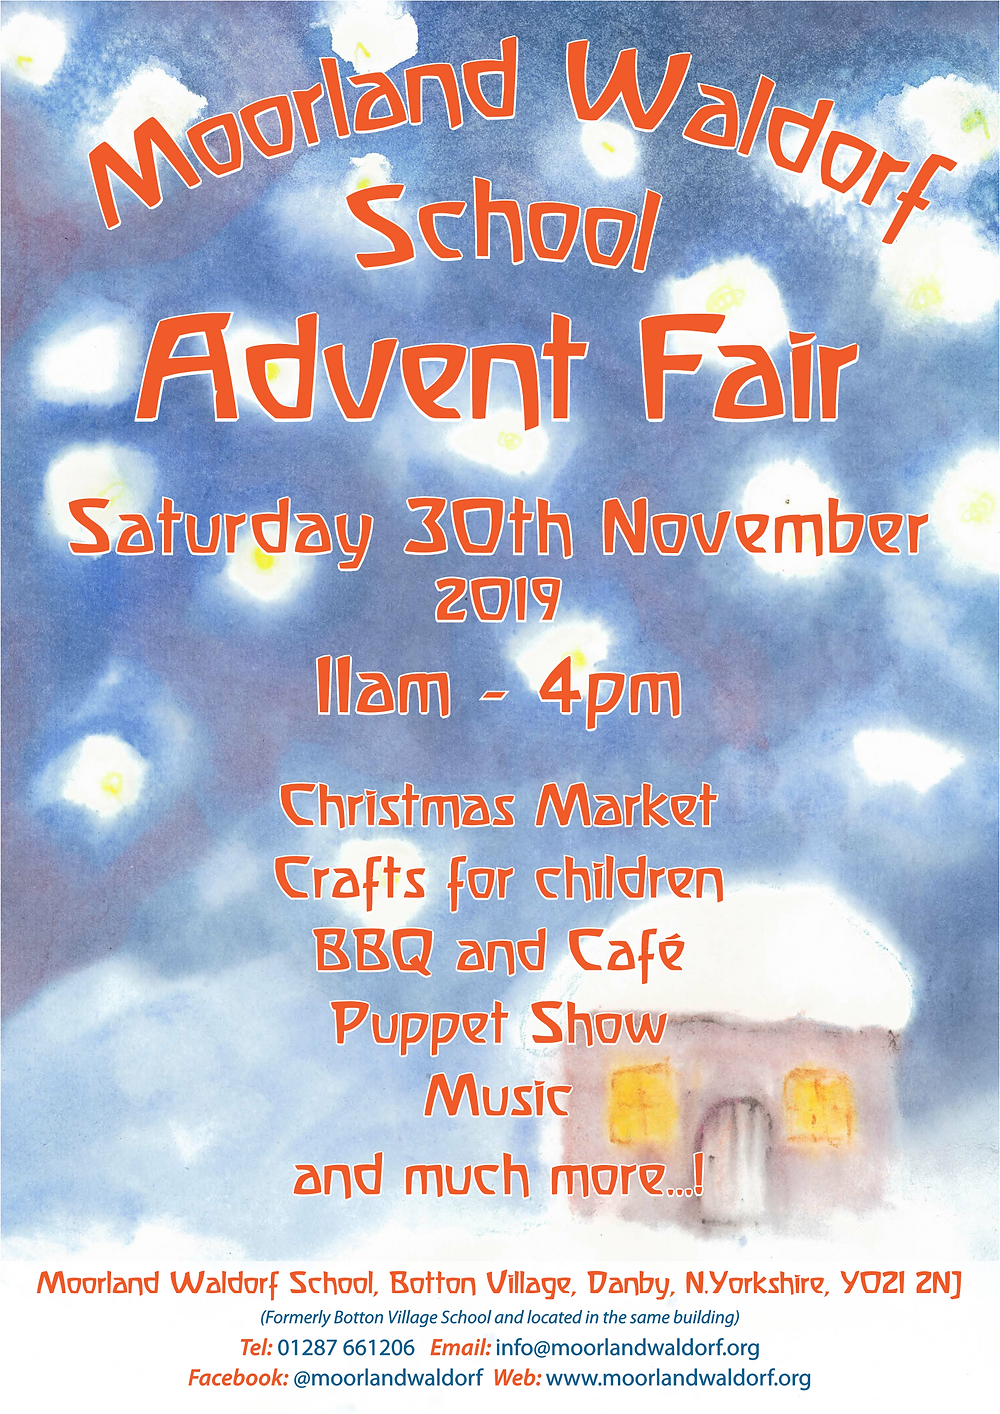 Come in from the wintery weather and enjoy our Advent Fair as we begin the Christmas season. Enjoy a warm drink and some soup while listening to some festive music, then meander around the market taking in the beautiful crafts and activities.